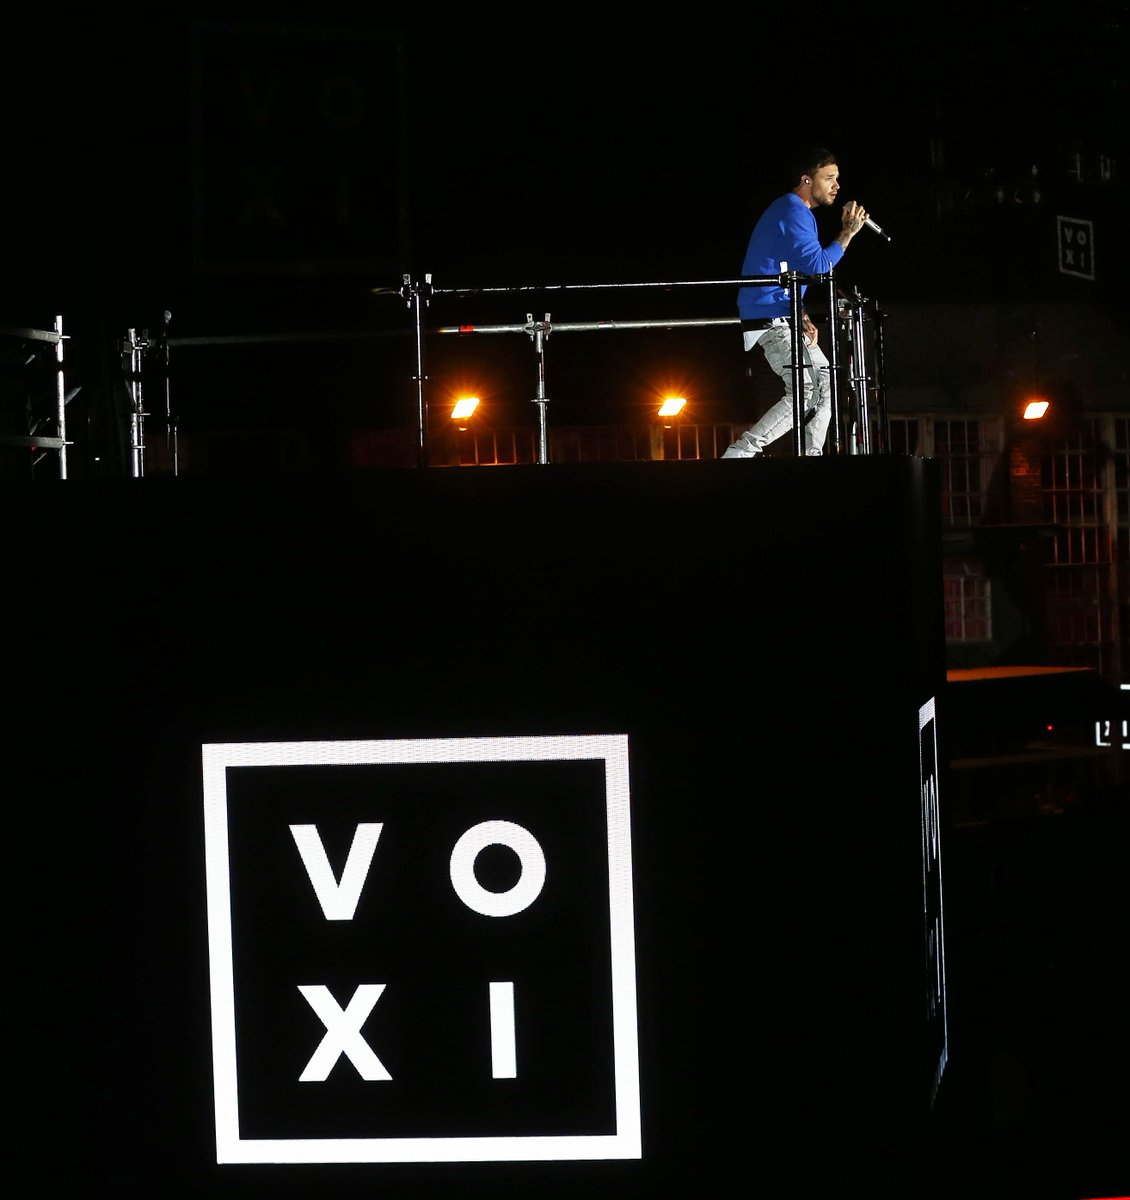 Throwback to the @VOXI_UK launch last week. Check out https://t.co/Pkmu9BIqKn and order a free sim 📲 #VOXI #ad